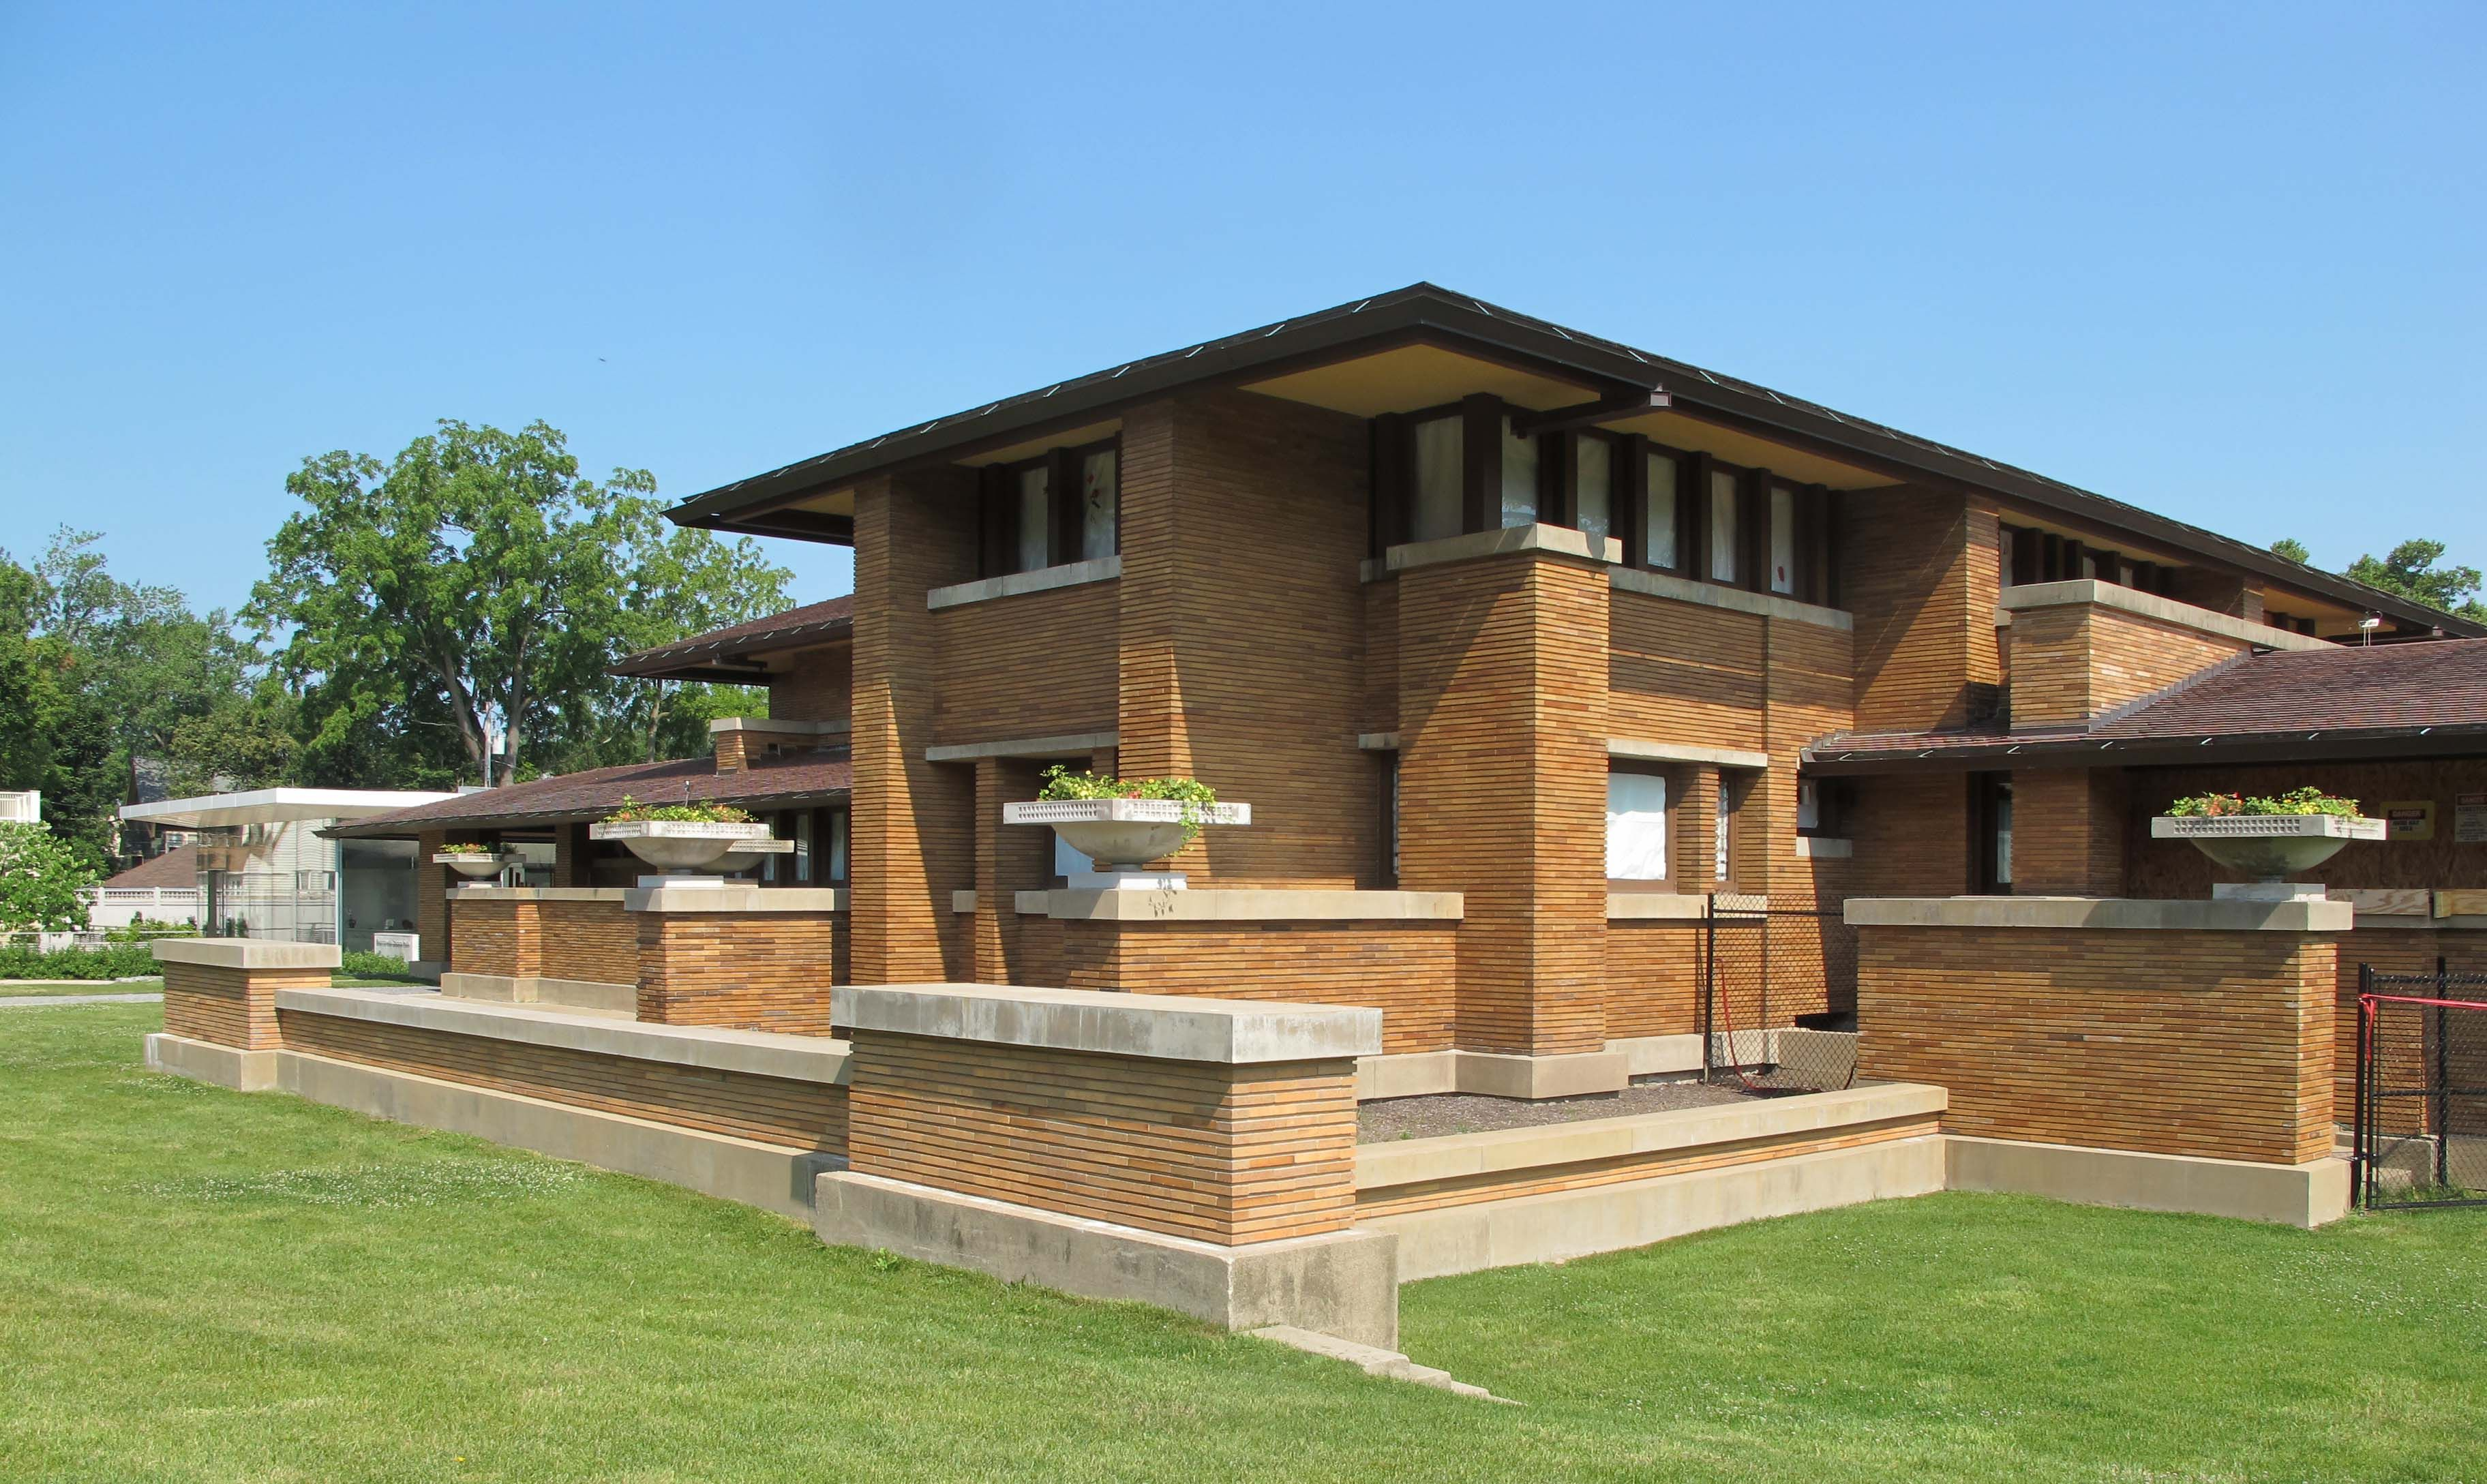 Darwin d martin house frank lloyd wright 1903 5 for Frank lloyd wright prairie house plans